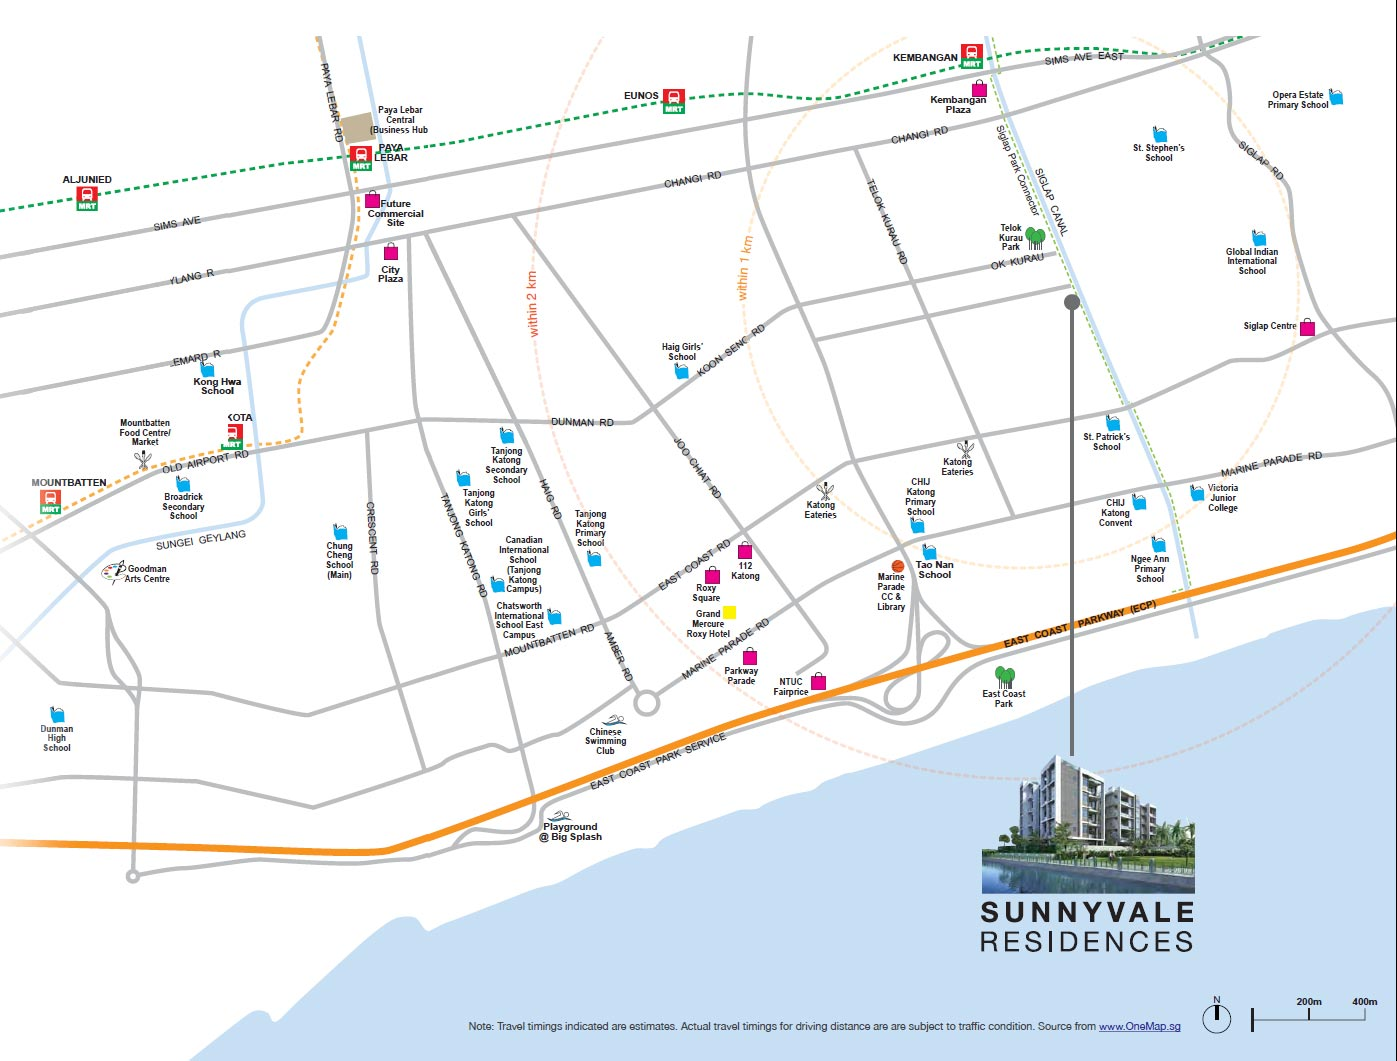 sunnyvale-residences-location-map